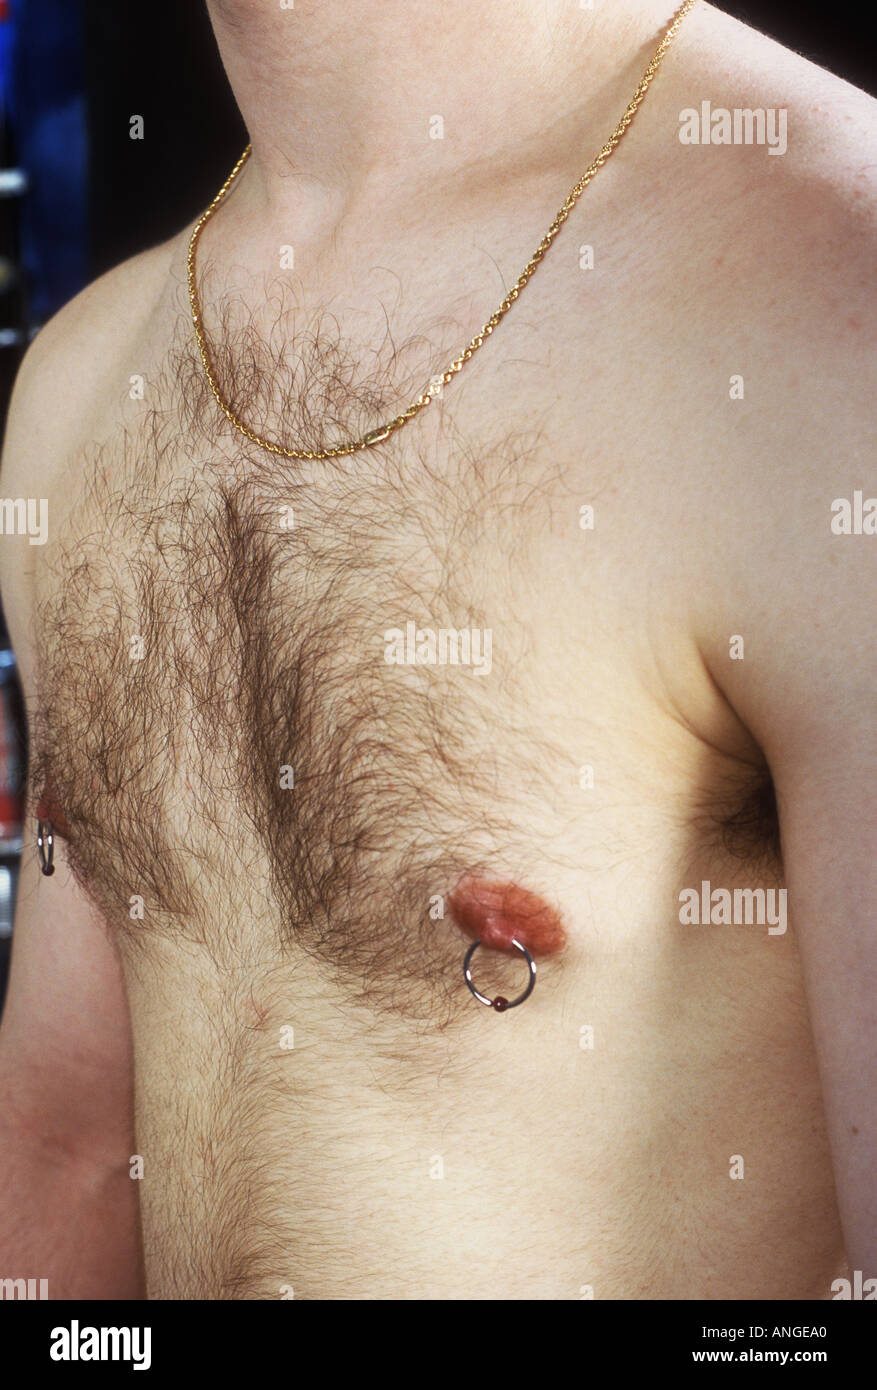 Why do some women have hairy nipples